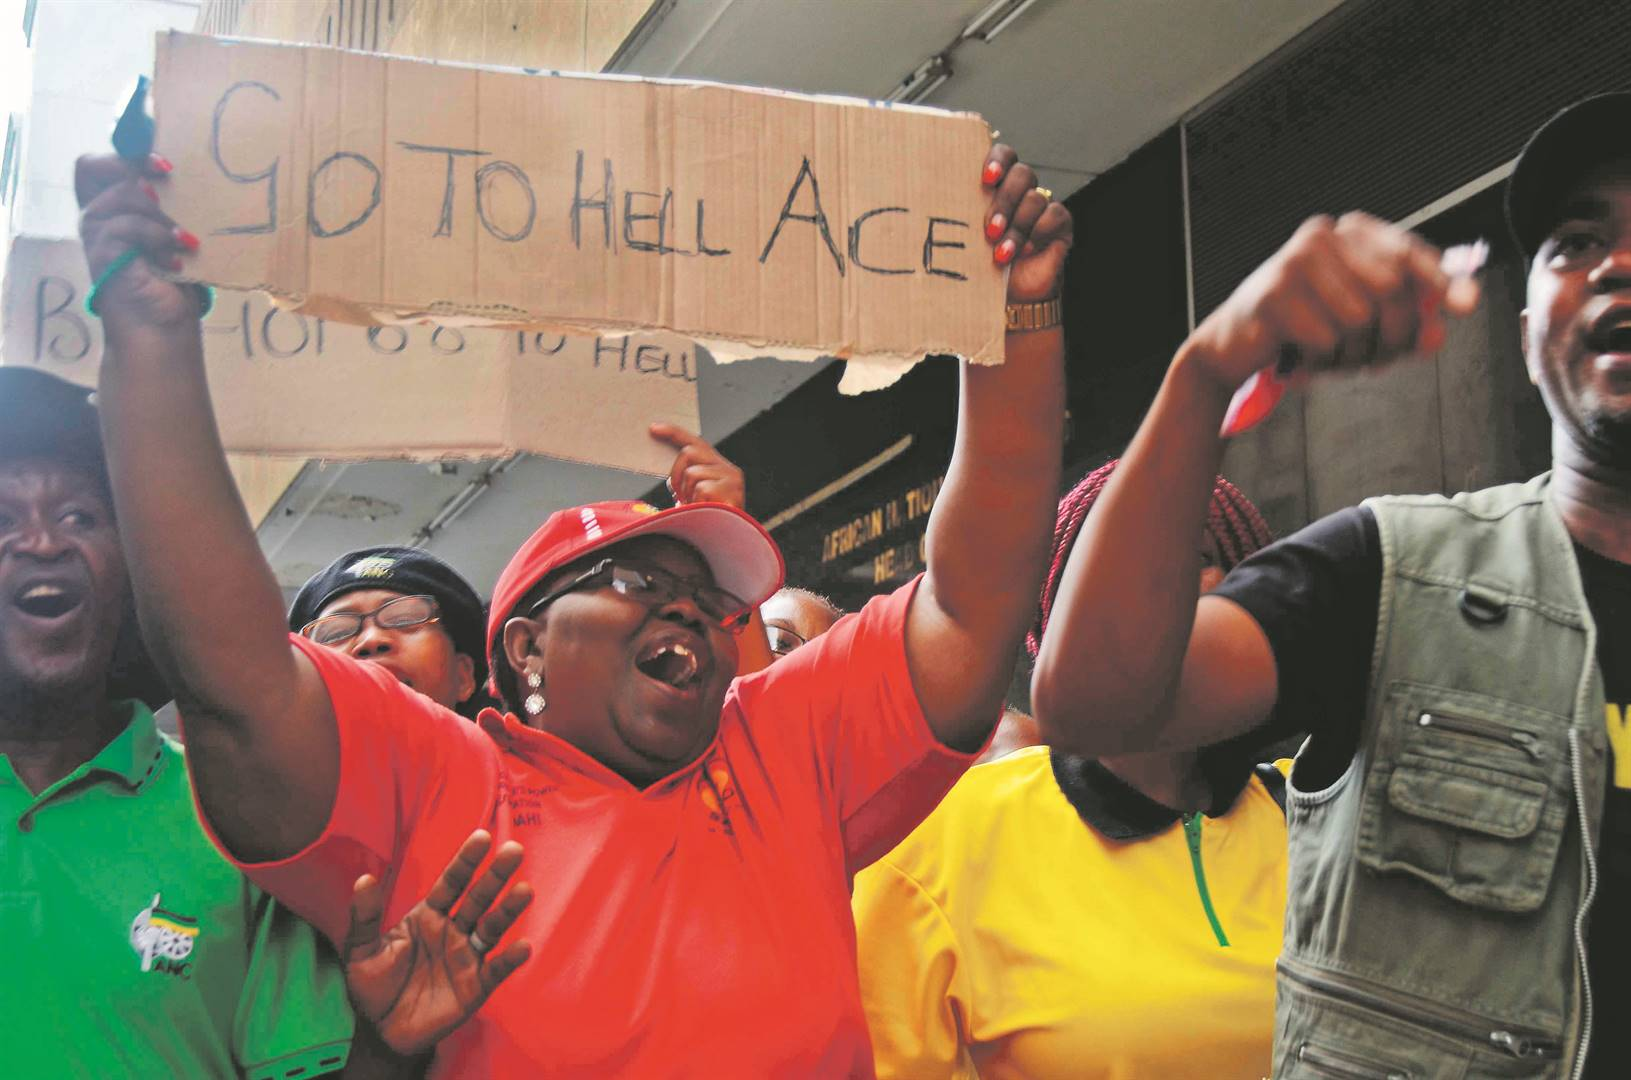 Members of the ANC Free State region protest outside Luthuli House on March 5 2018 in Johannesburg. Angry Free State ANC members descended on the party's headquarters, demanding that the provincial task team be reconstituted because it was pro-Ace Magashule, the former premier of the province. Picture: Gallo Images